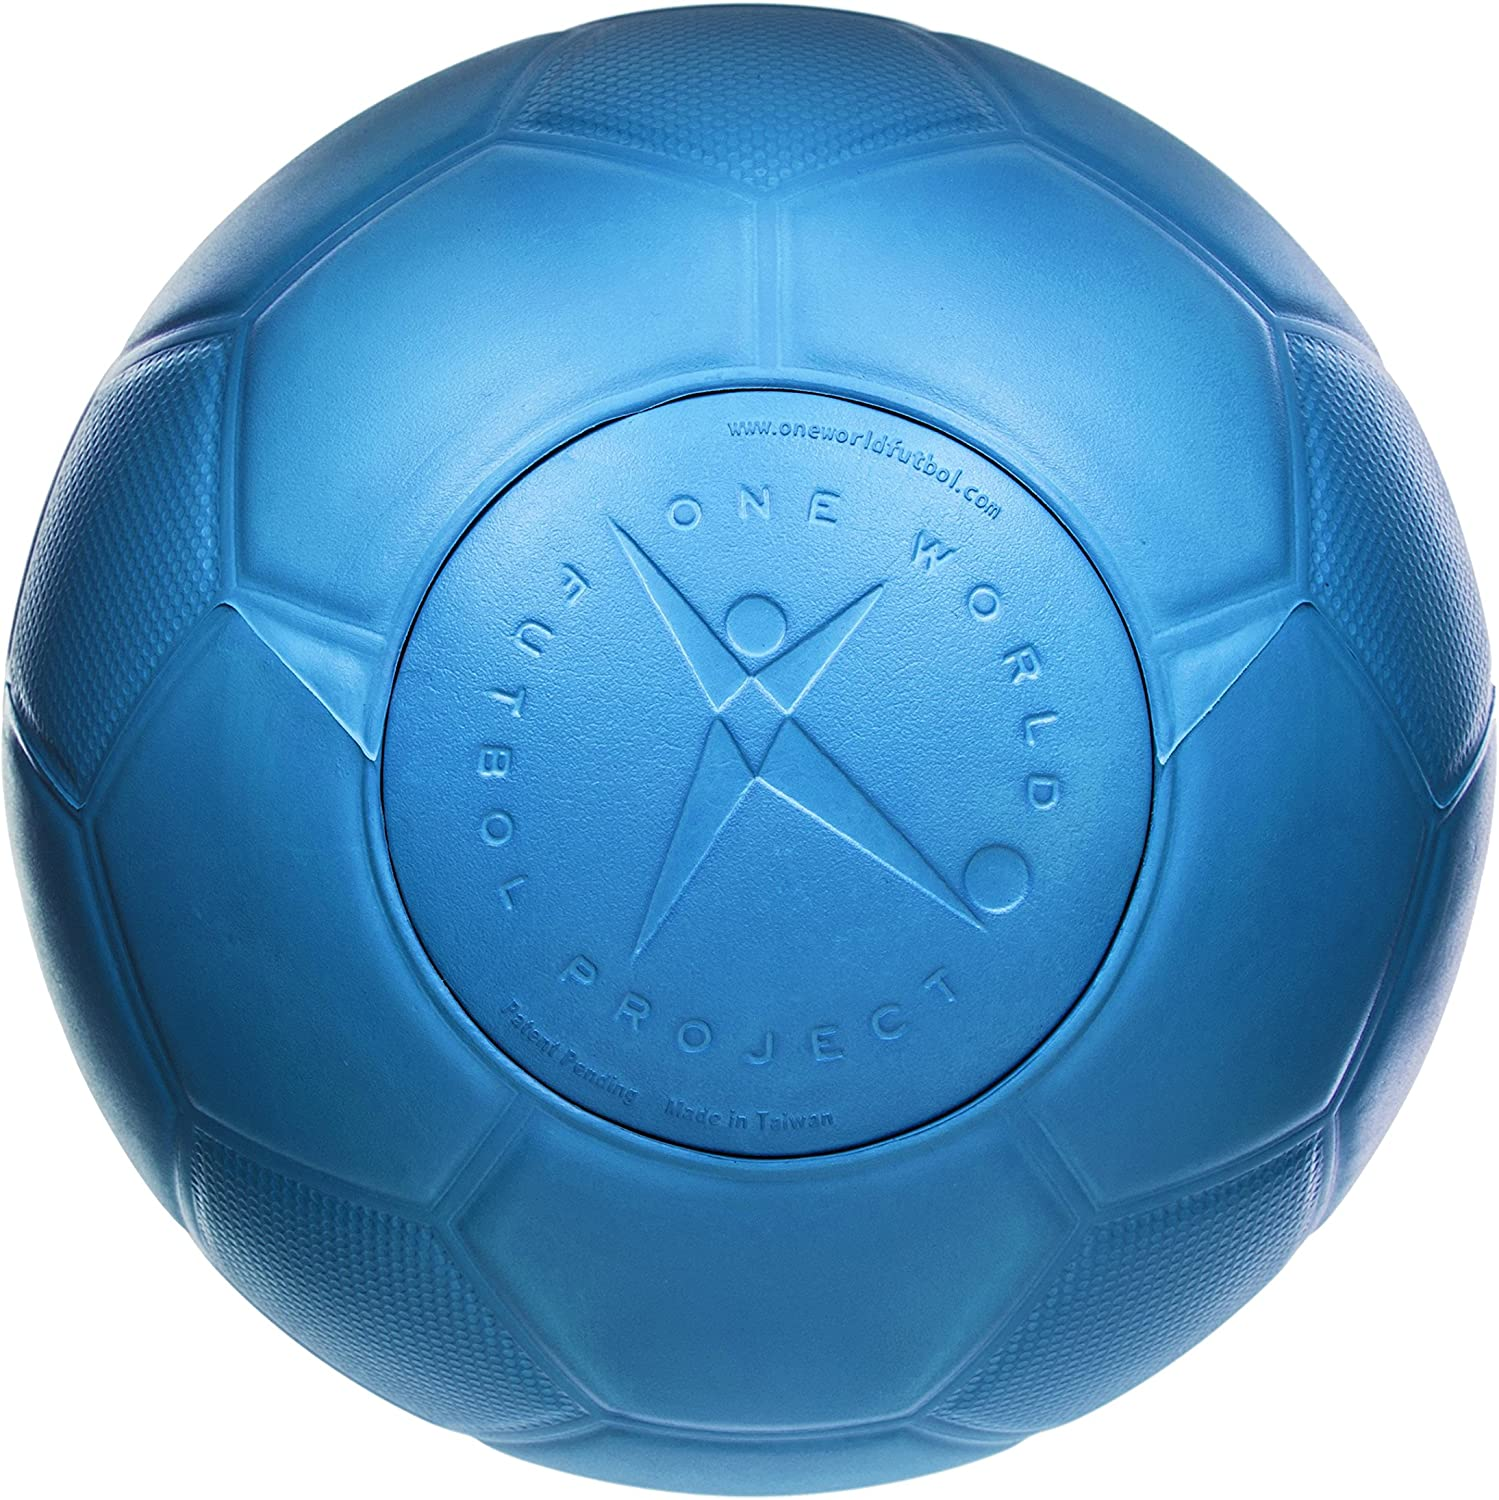 Quantity limited One New Shipping Free Shipping World Play Project Soccer Unpoppable - No Ball Unbreakable